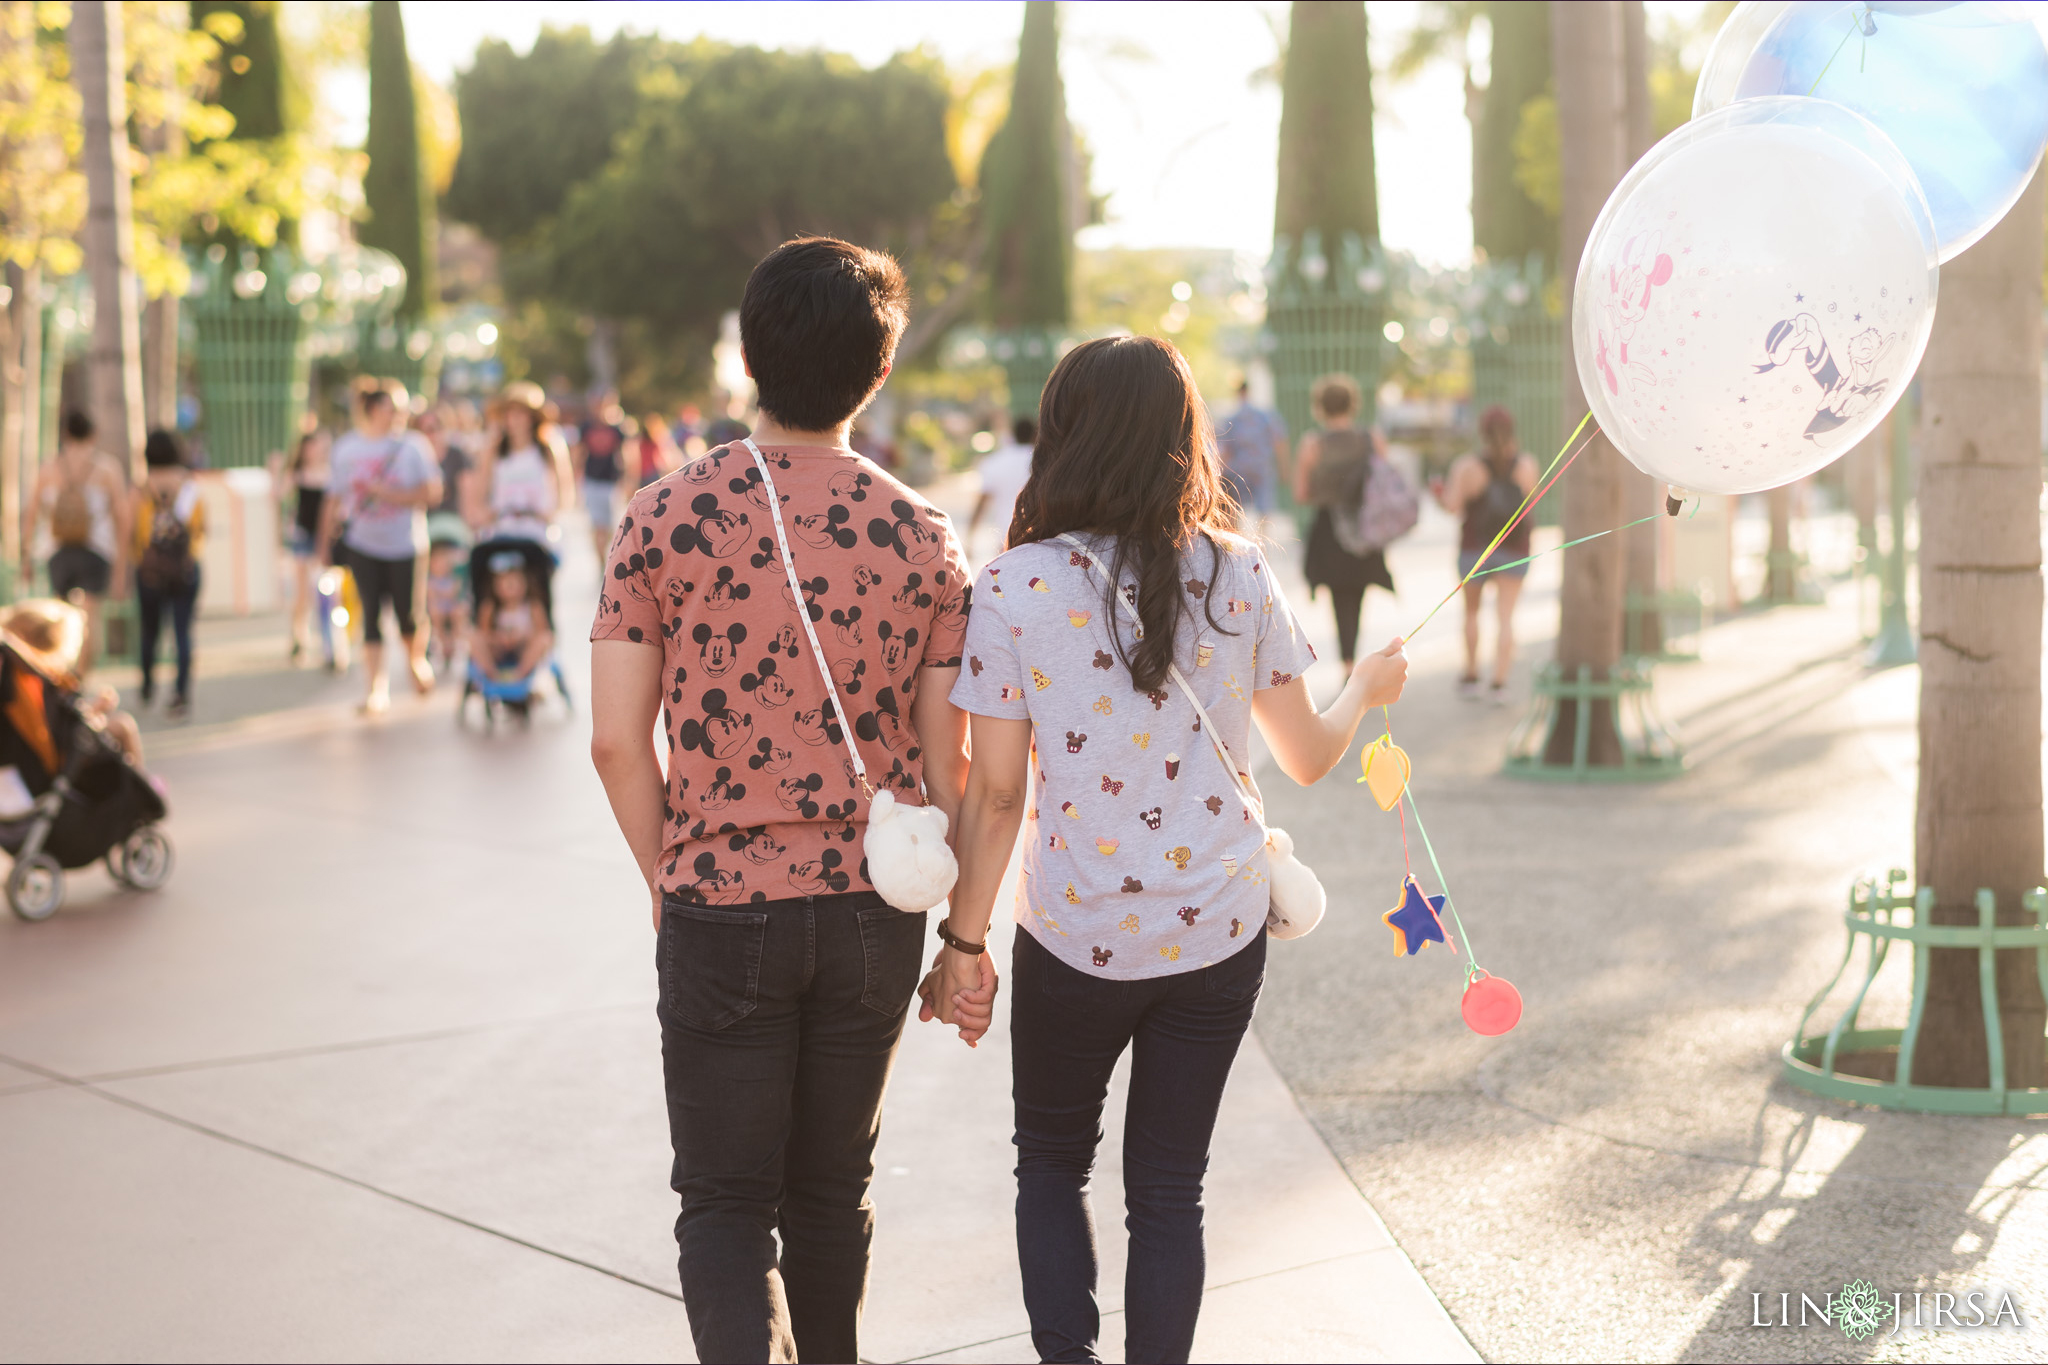 012 Downtown Disney Anaheim Engagement Photography